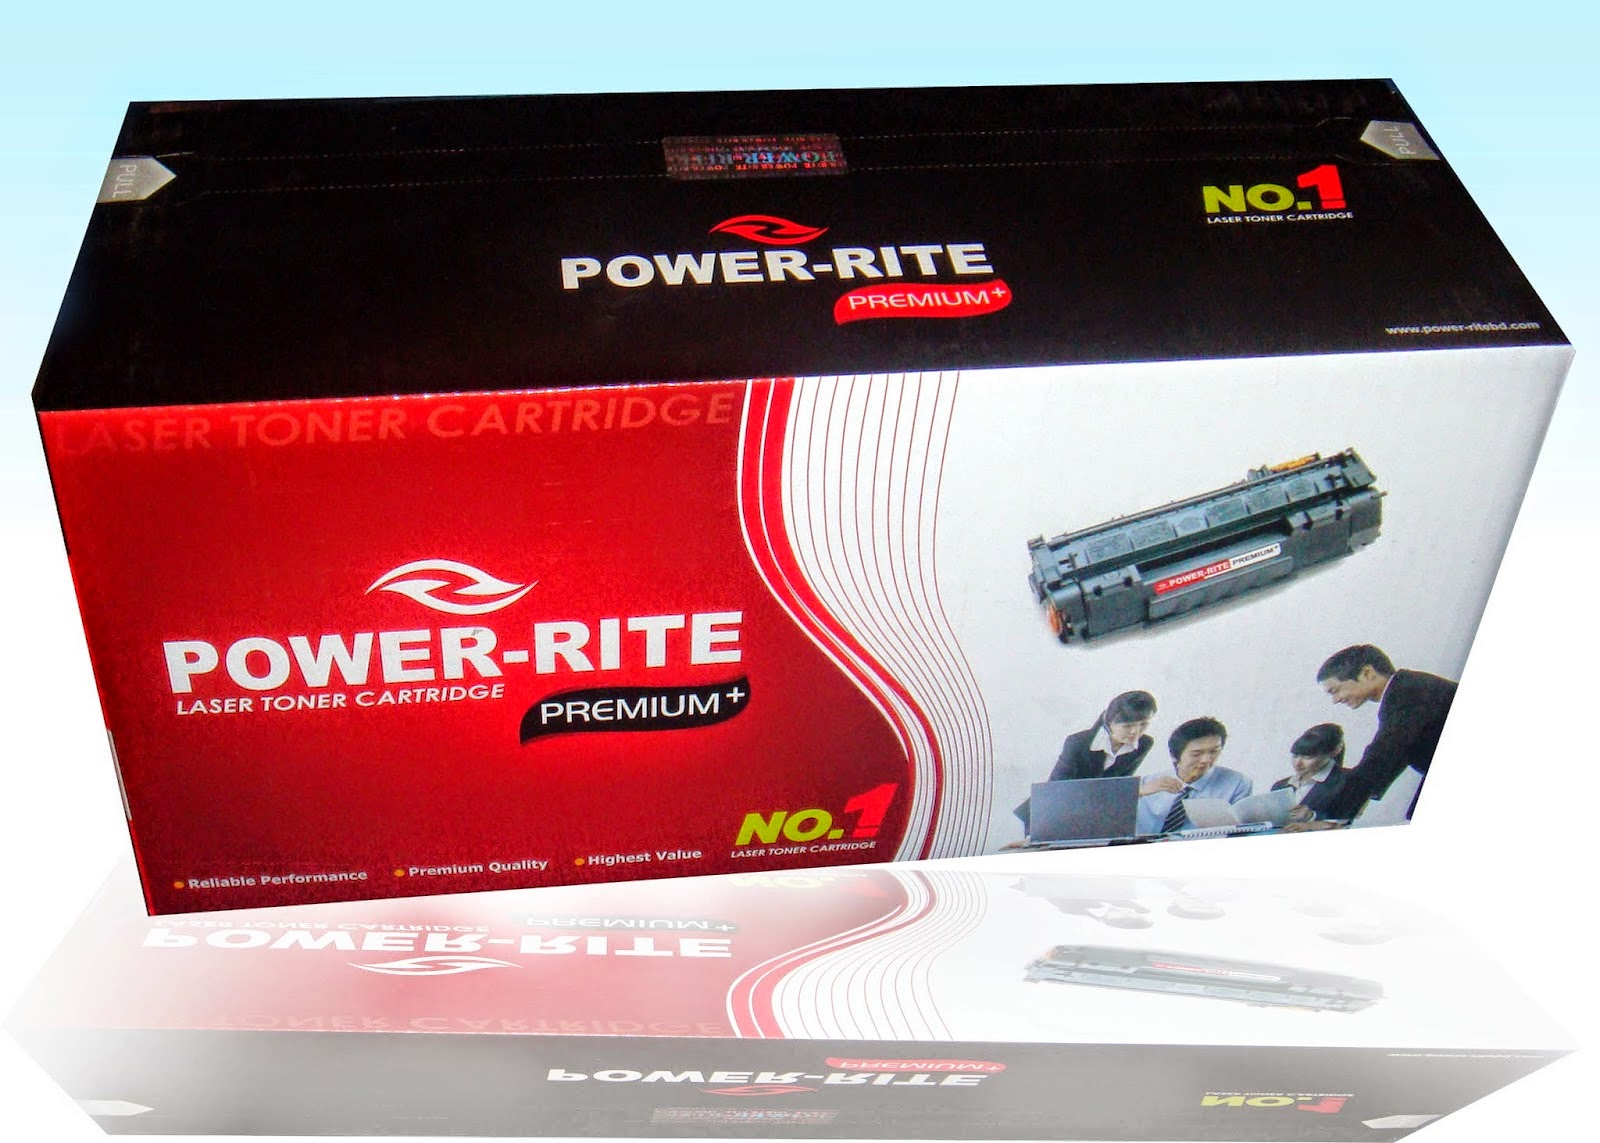 Any information for Power Rite Toner, Please Contact  +88 01917 888 878,  +88 01617 888 878